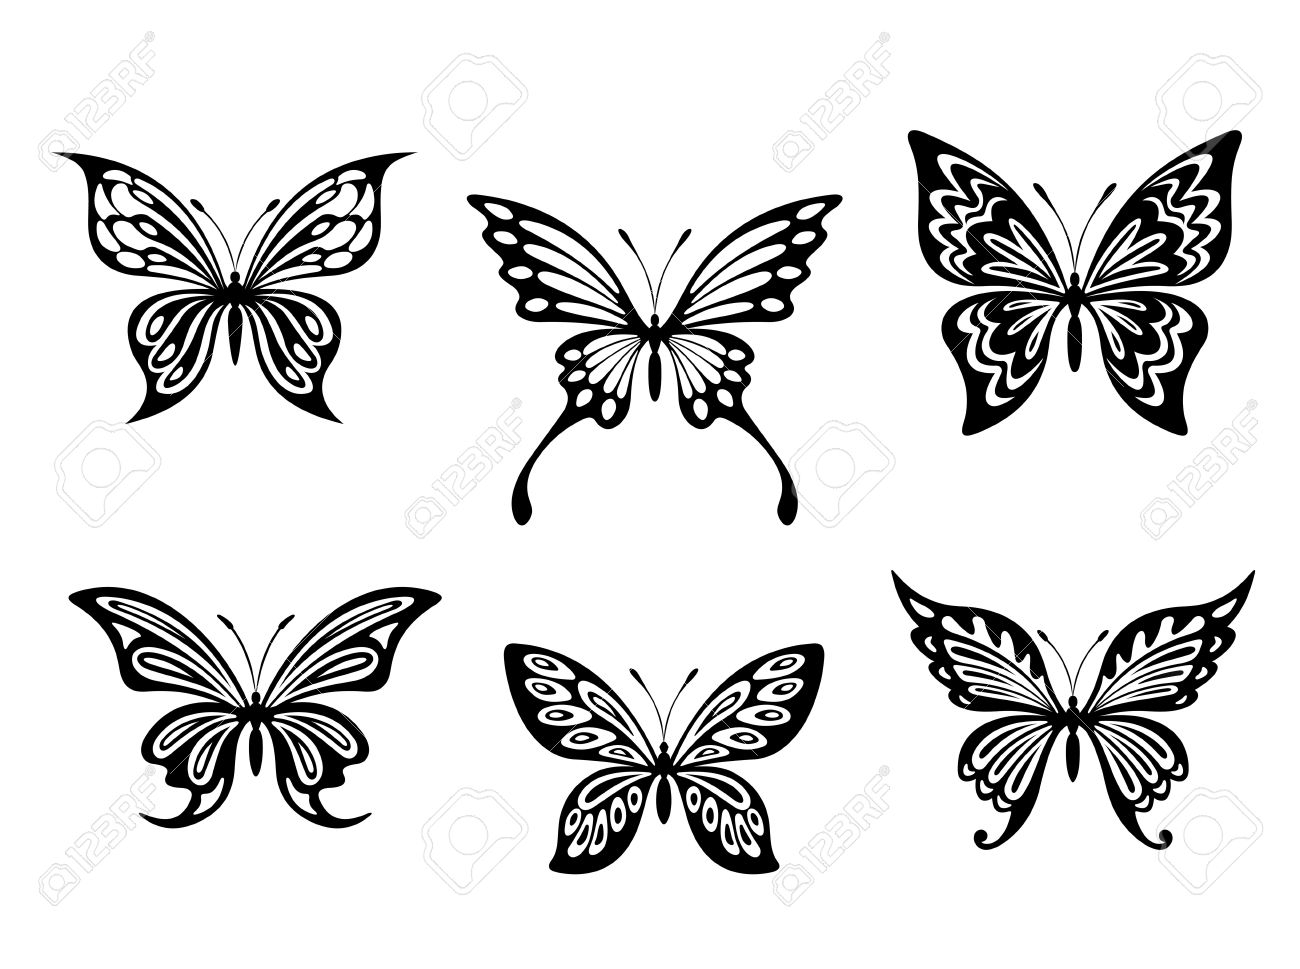 Black Butterfly Tattoos And Silhouettes Isolated On White Background pertaining to measurements 1300 X 969